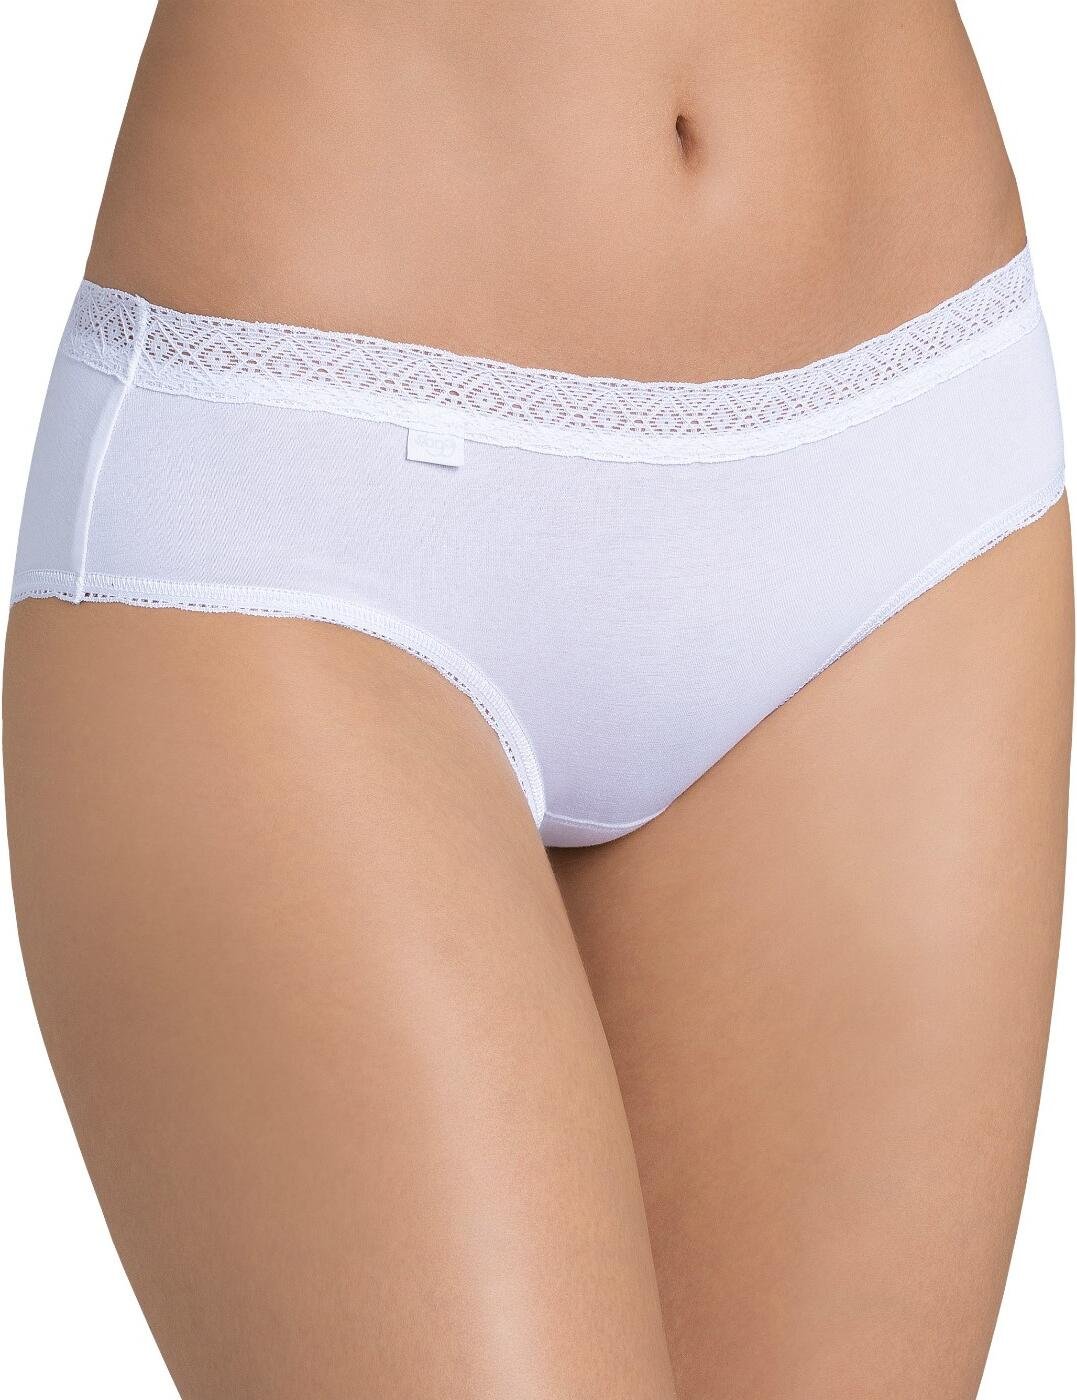 10162961 Sloggi EverNew Lace Hipster - 10162961 White